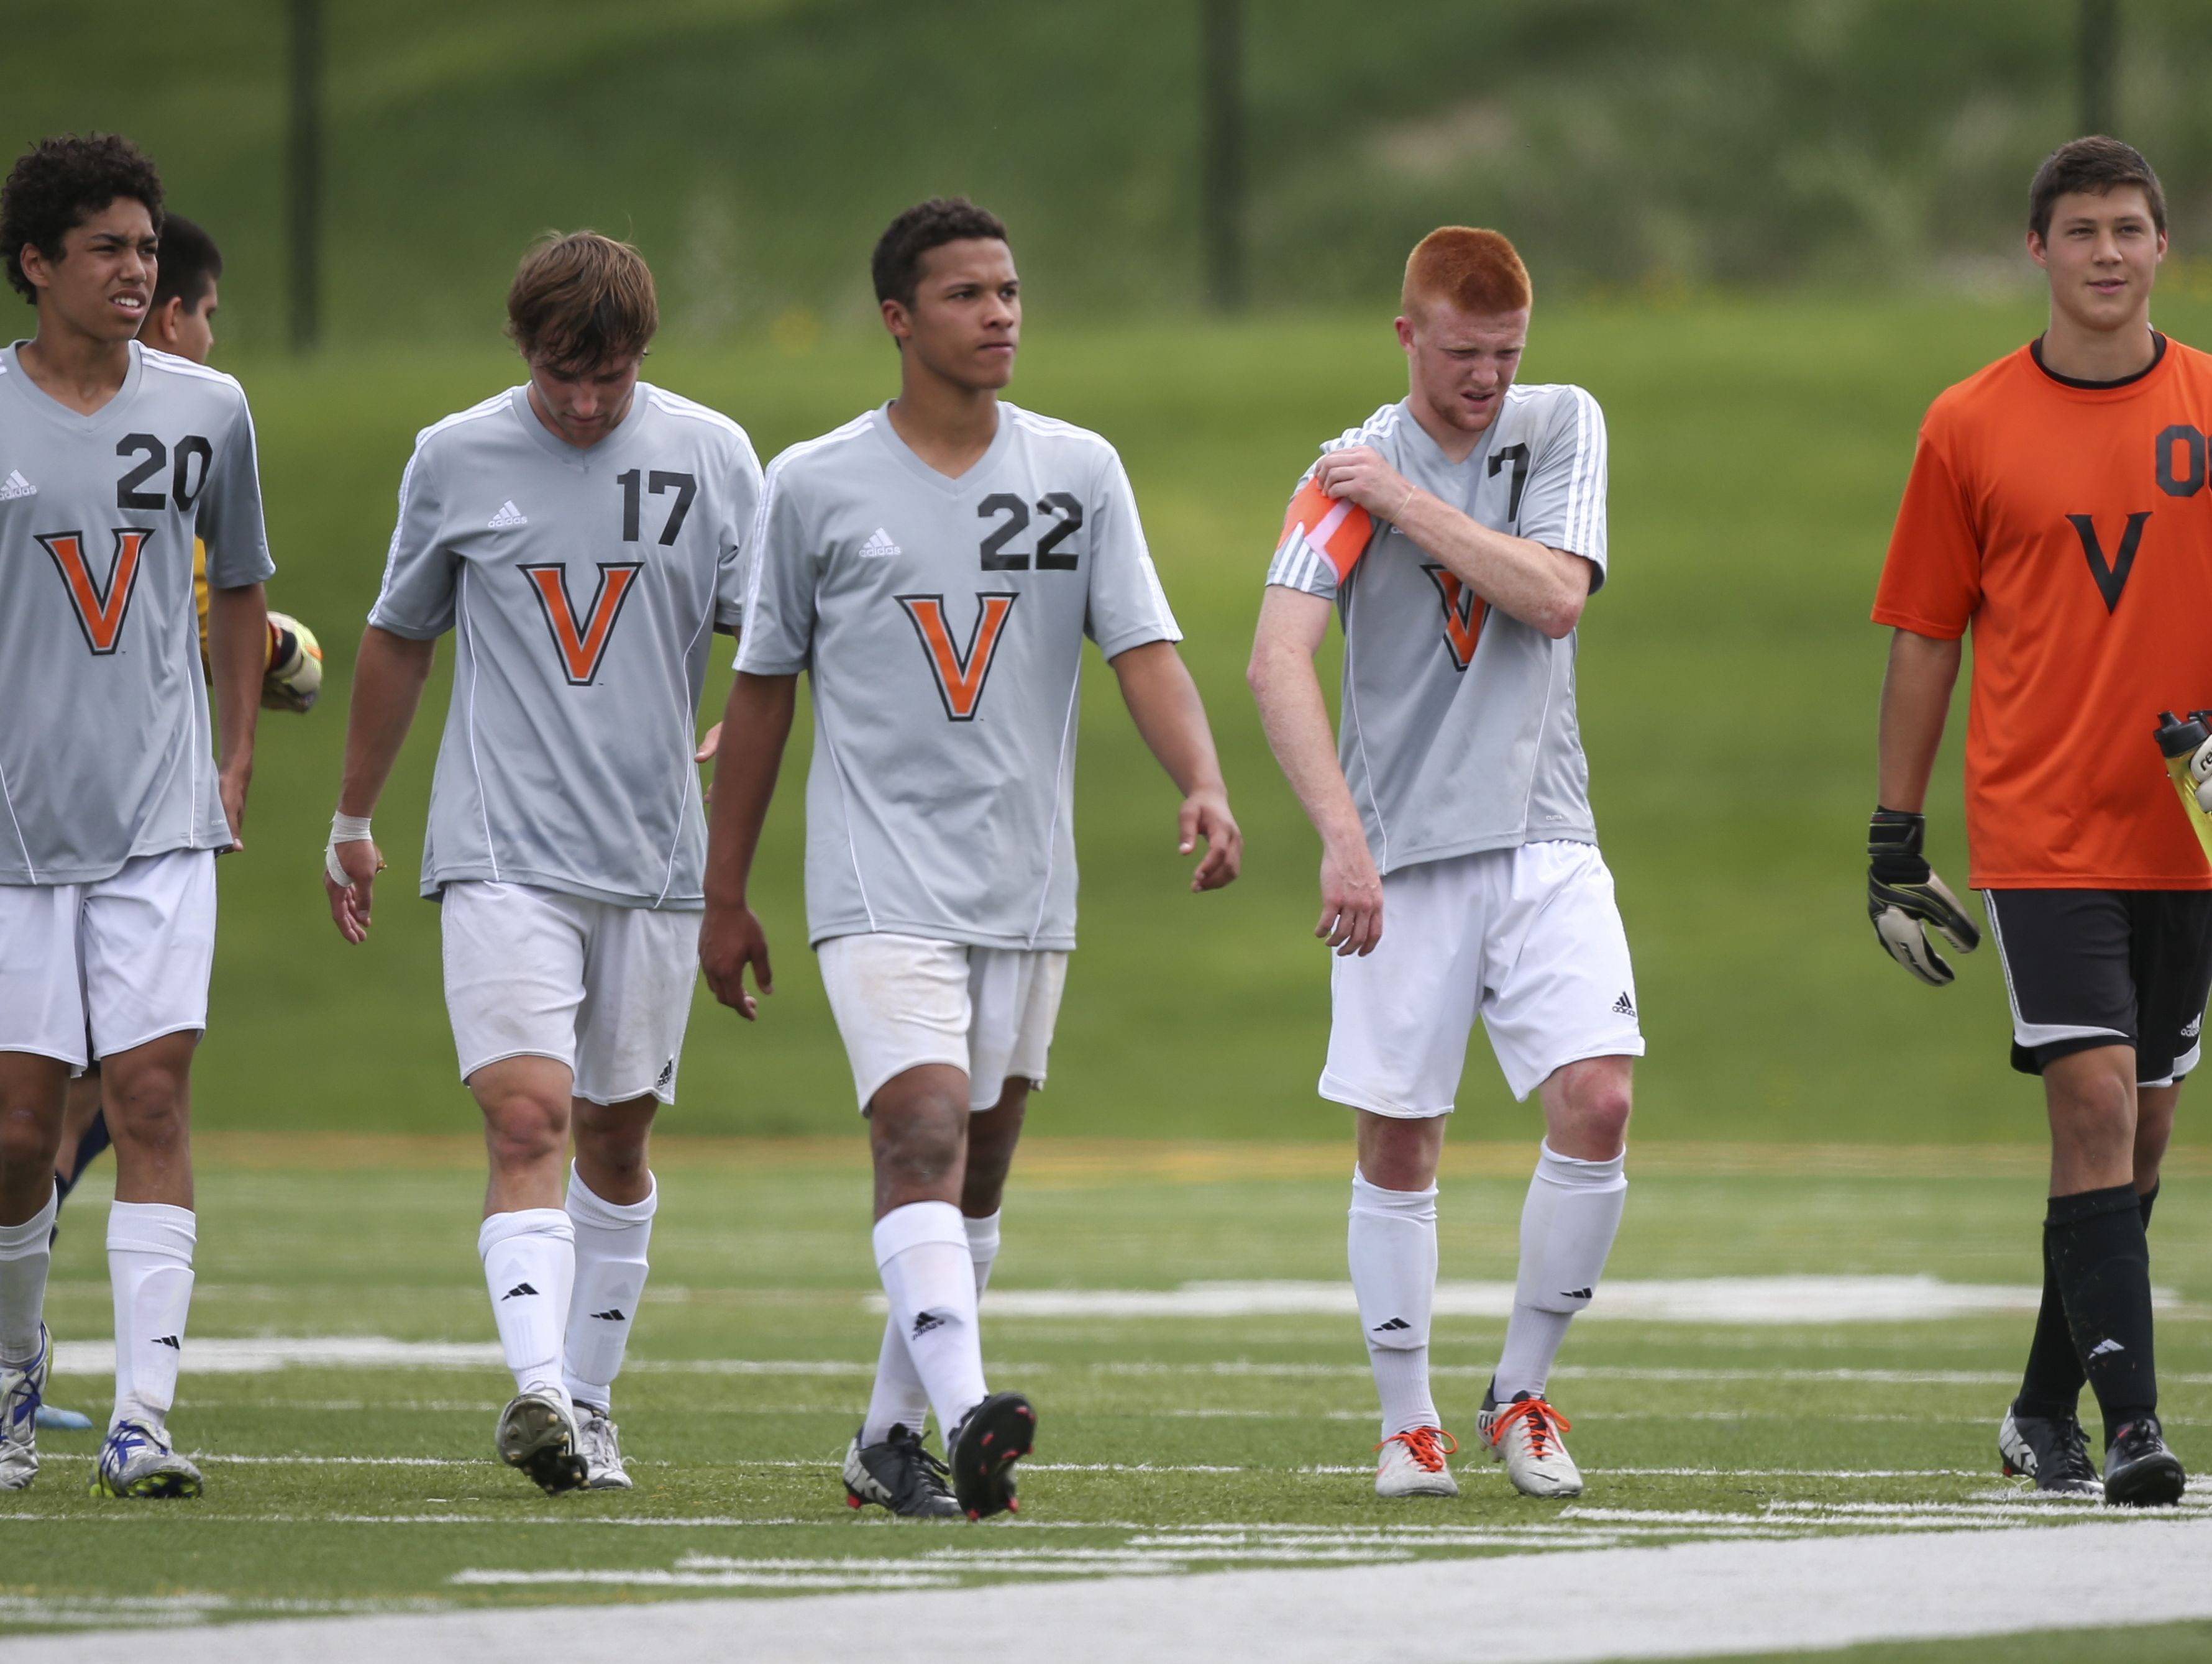 Valley soccer players Aaron Williams, 20, Britton Hiskey, 17, Addison Parrish, 22, Jordan Lucas, 7, and AJ Thompson, 00, walk off the field together during a varsity boys soccer match between West Des Moines Valley and Sioux City West on Saturday, May 10, 2014, at Valley Stadium in West Des Moines, Iowa.